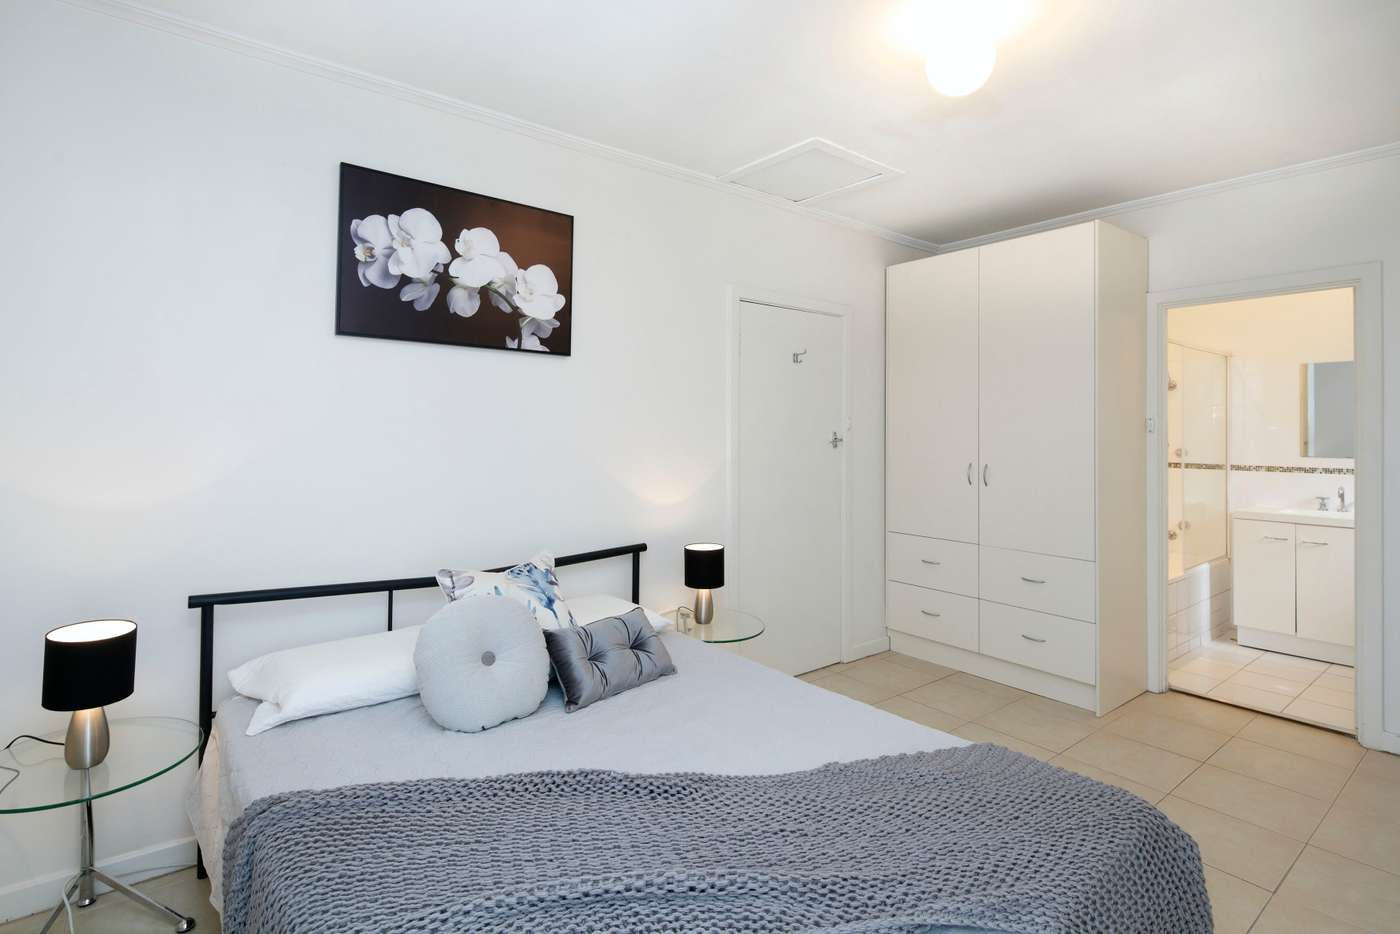 Fifth view of Homely unit listing, 4C/58 William Street, Norwood SA 5067